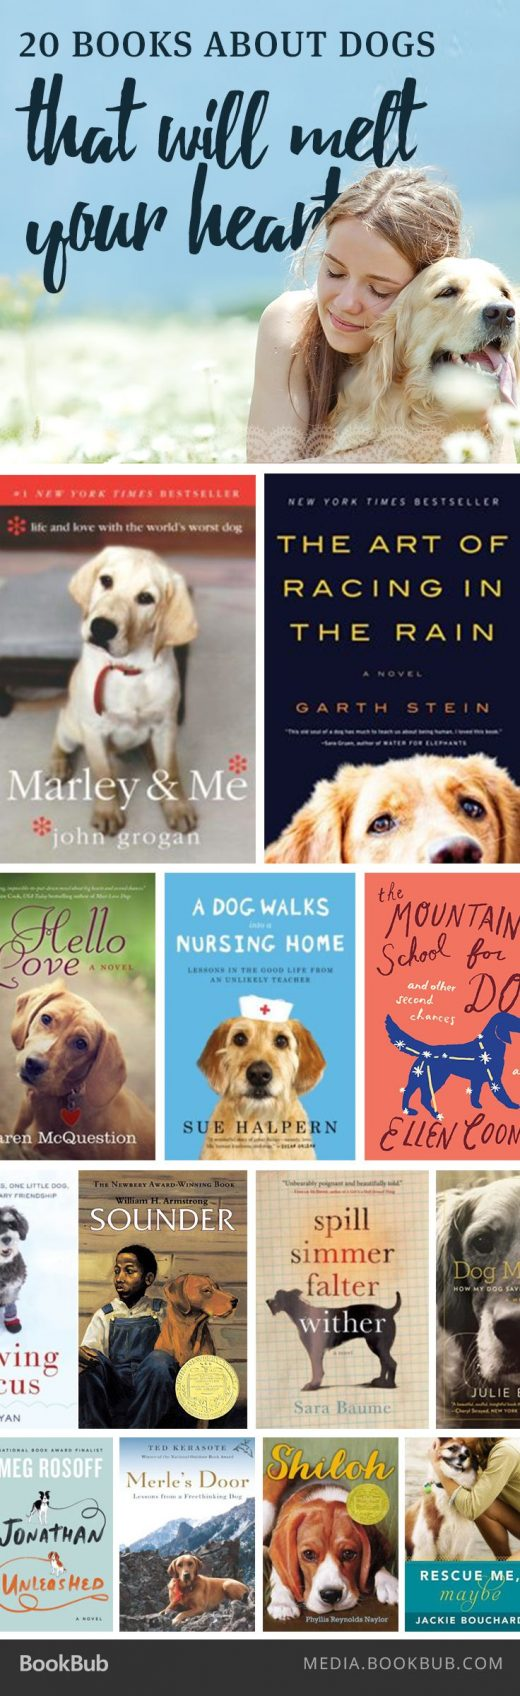 20 Books About Dogs That Will Melt Your Heart